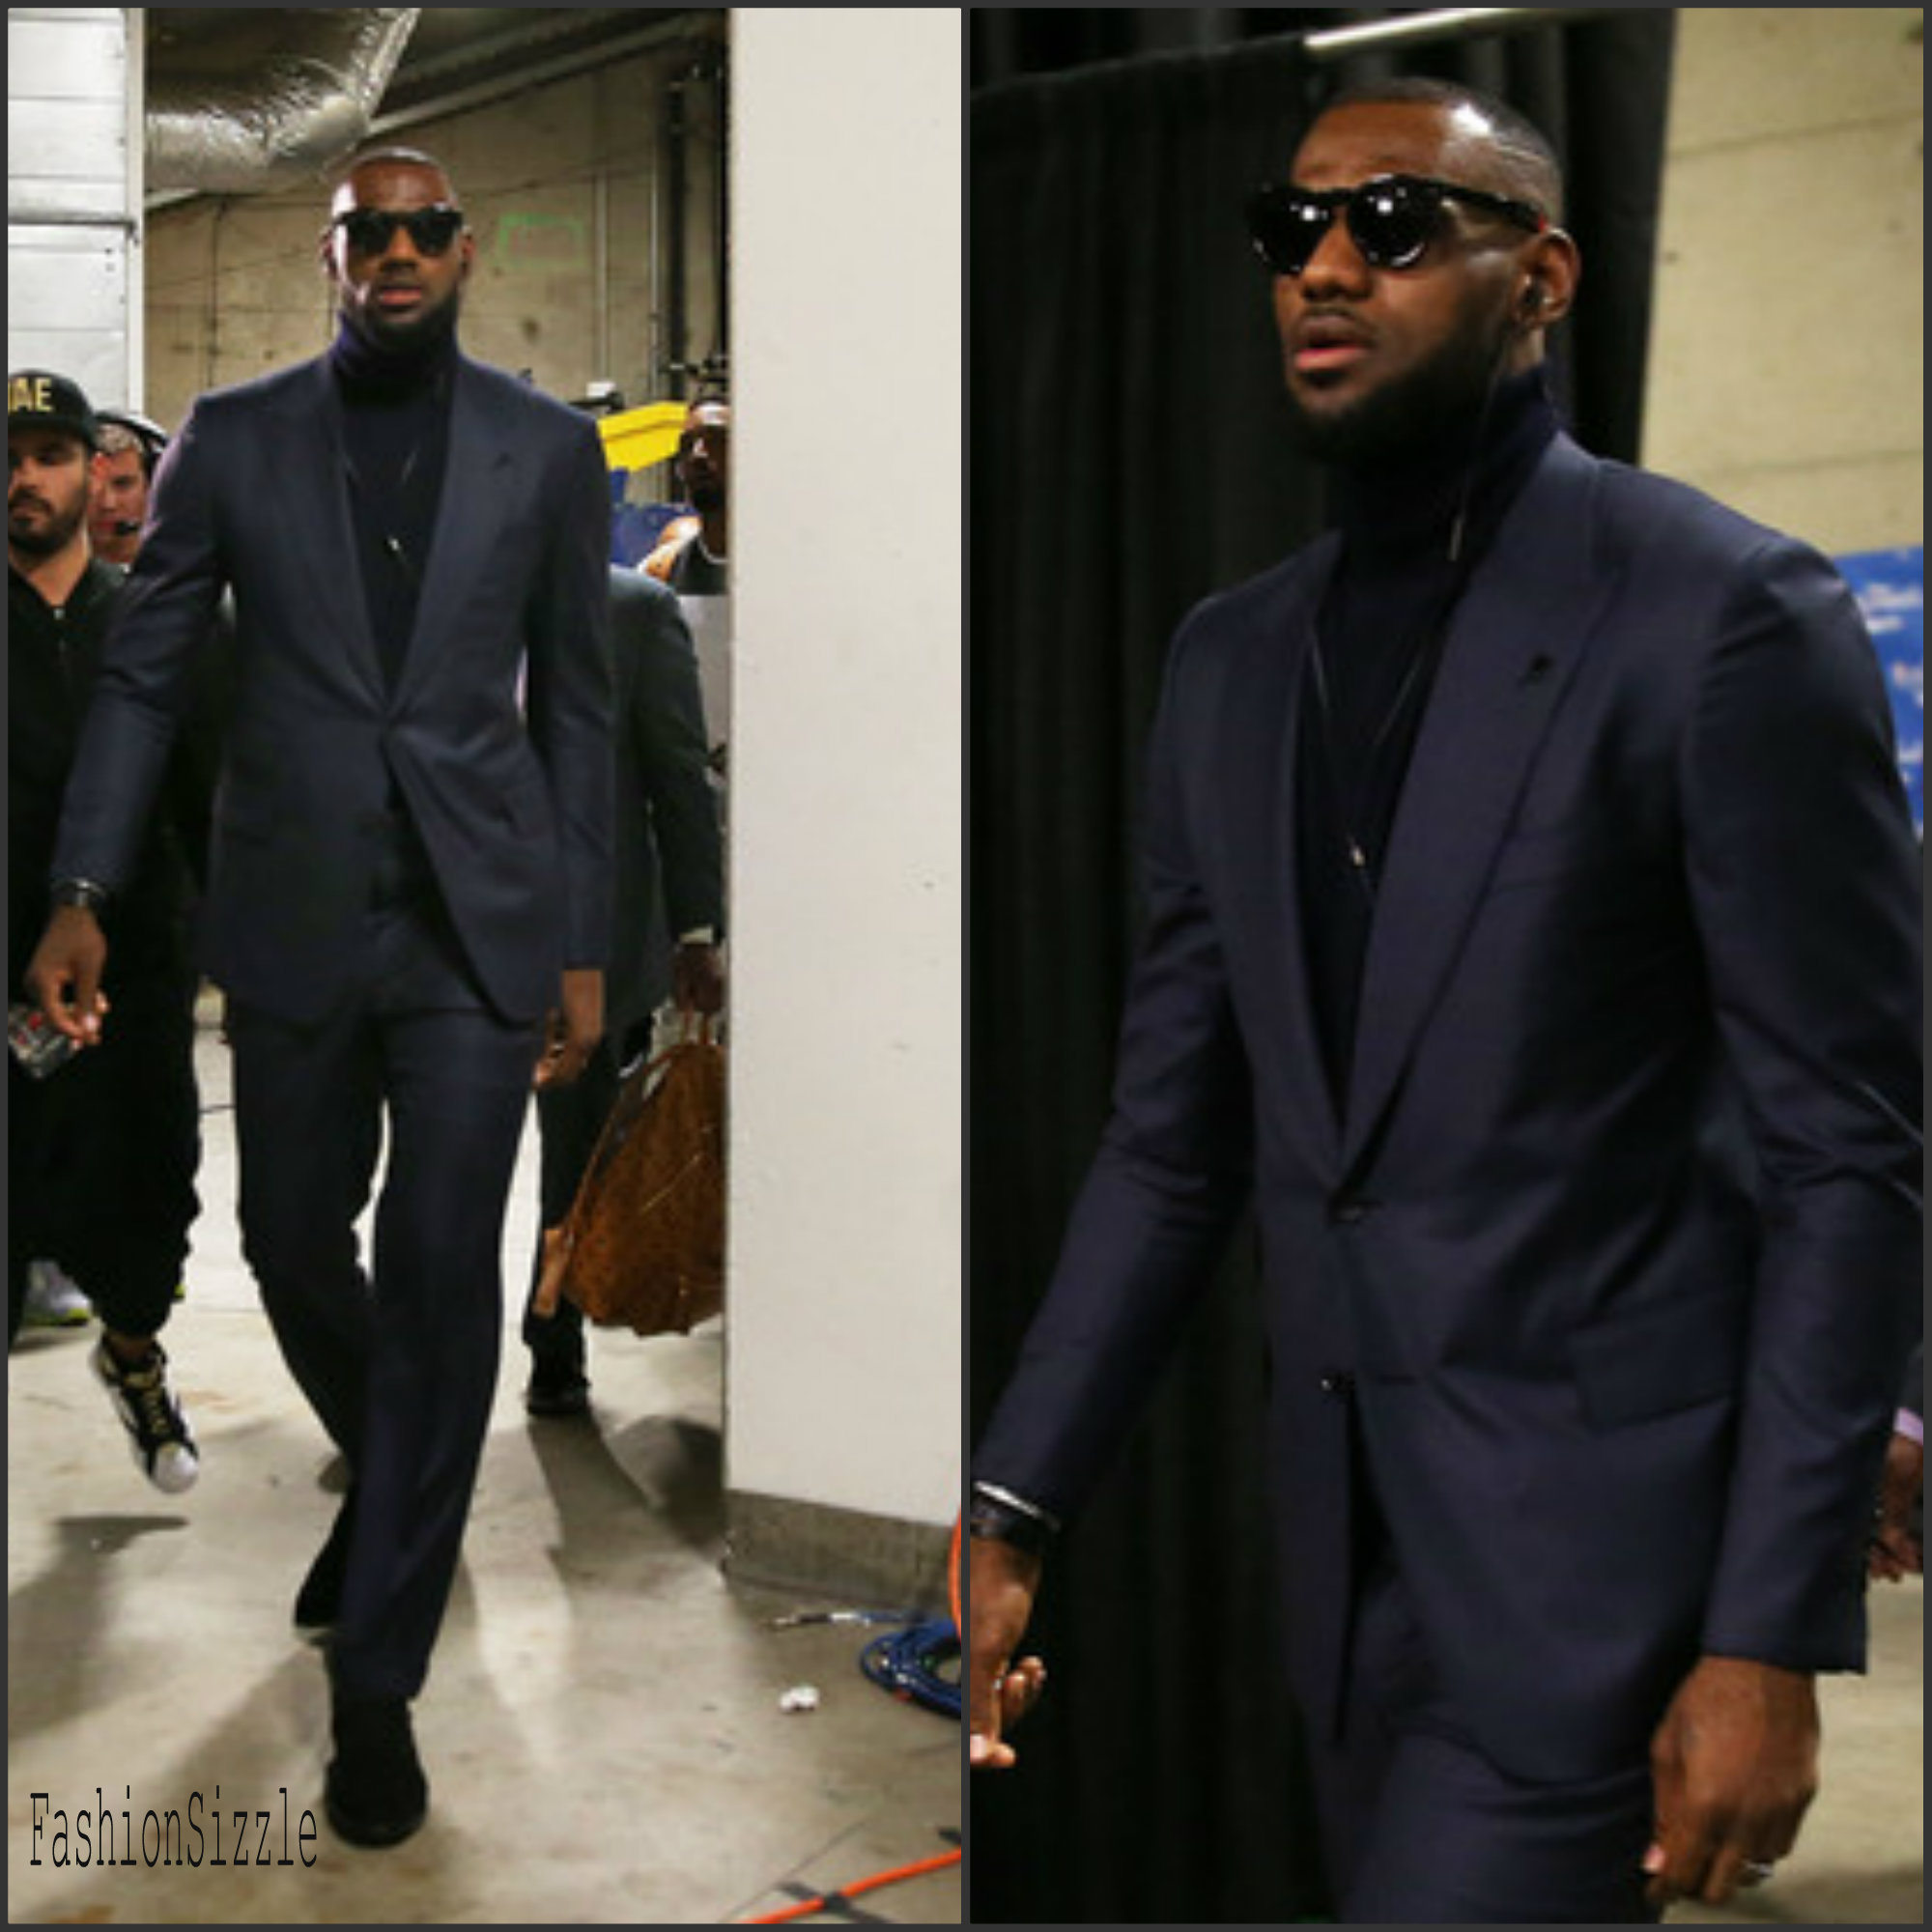 lebron-james-arrives-for-game-1-of-the-nba-finals-in-tom-ford-and-ralph-lauren